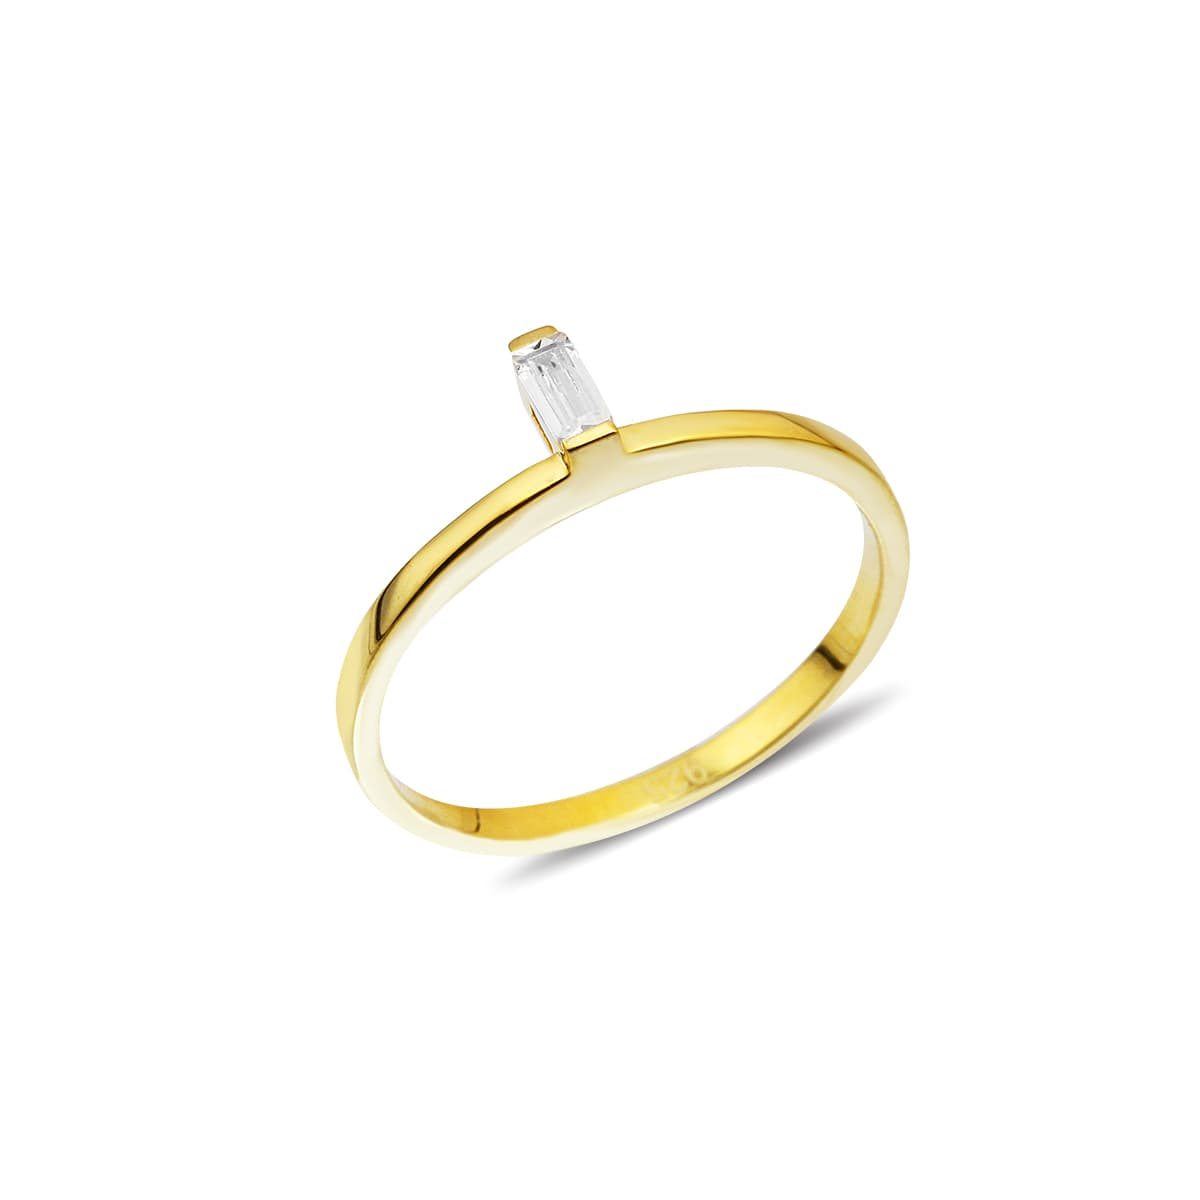 Gold plated zircon stone ring on silver